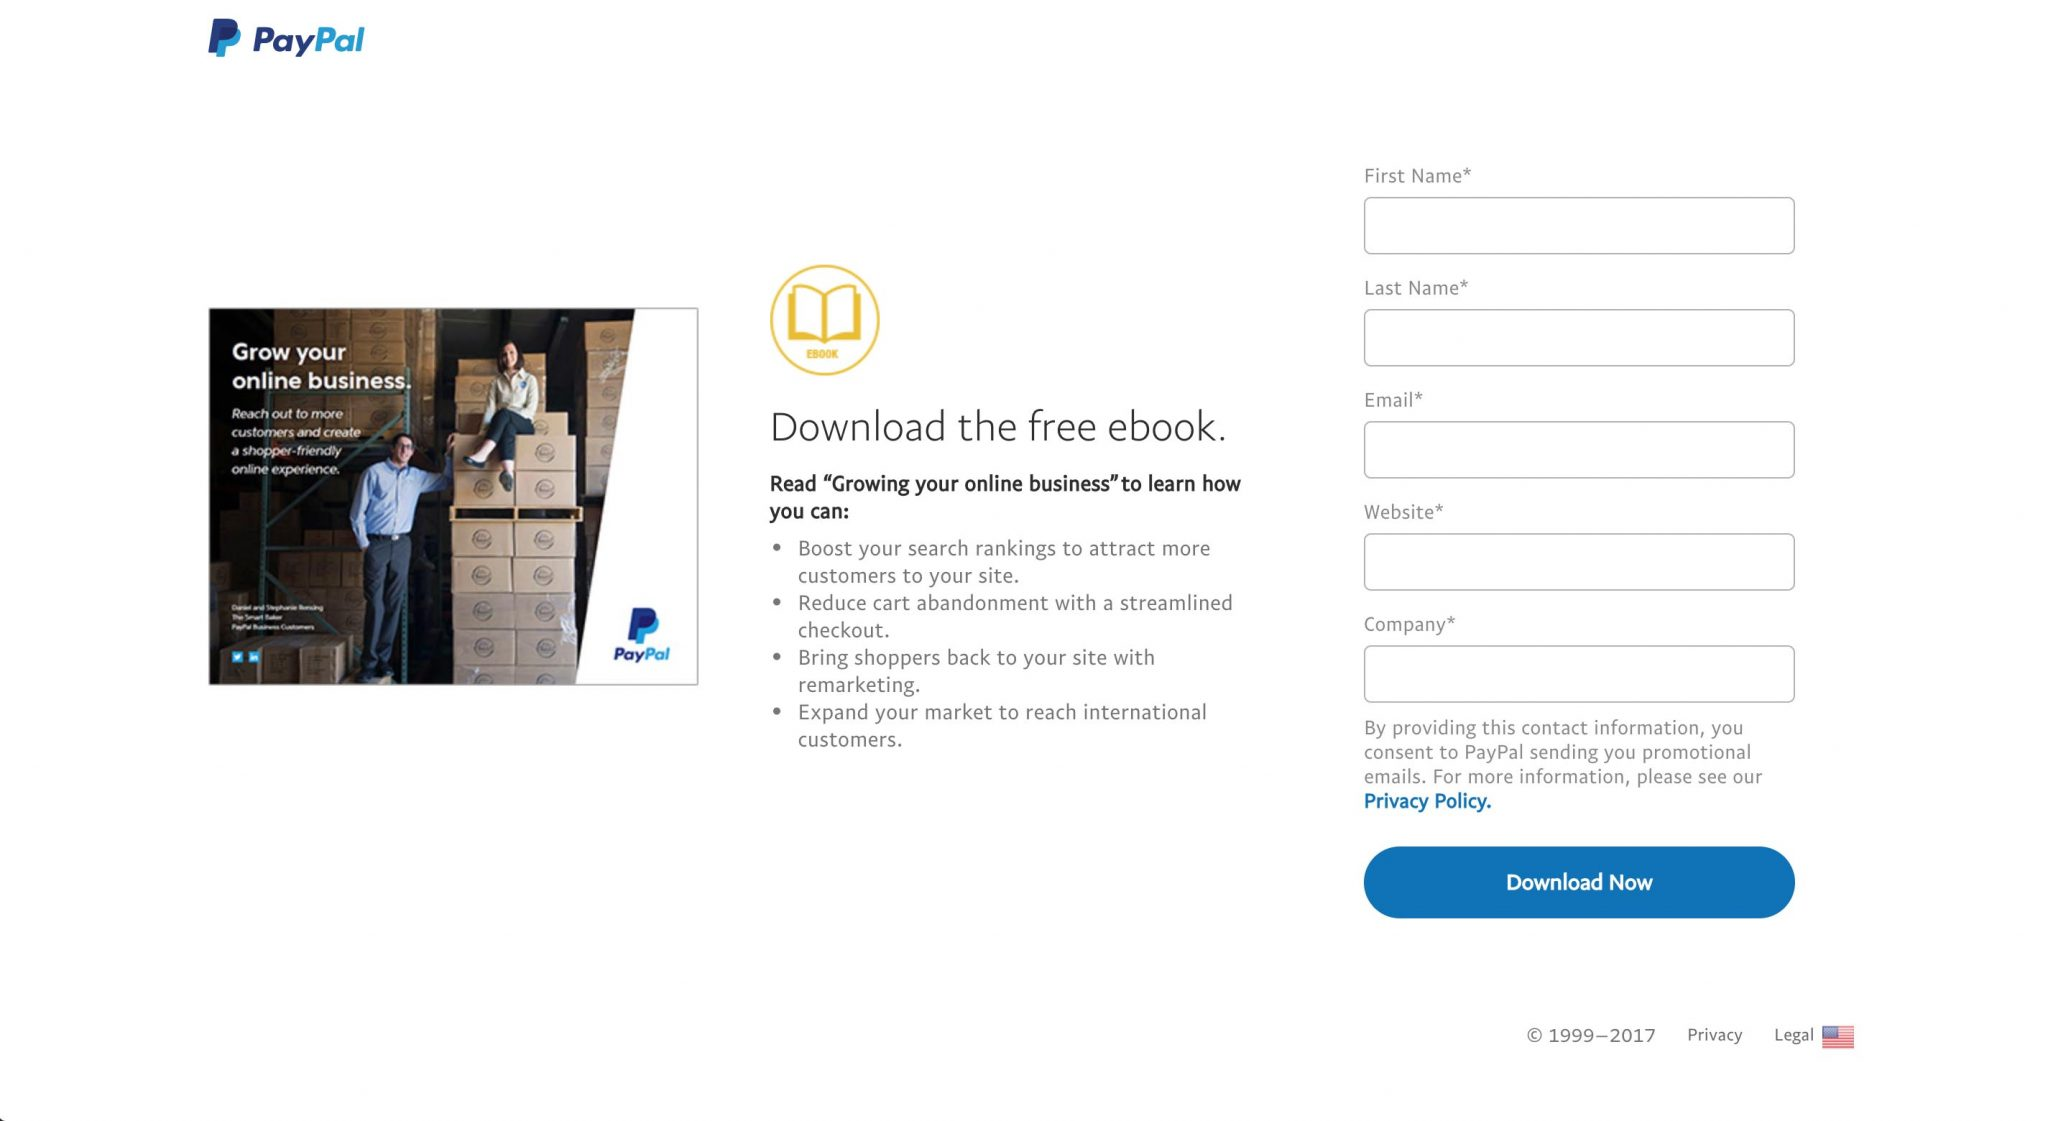 PAYPAL Landing page - Download the free ebook.